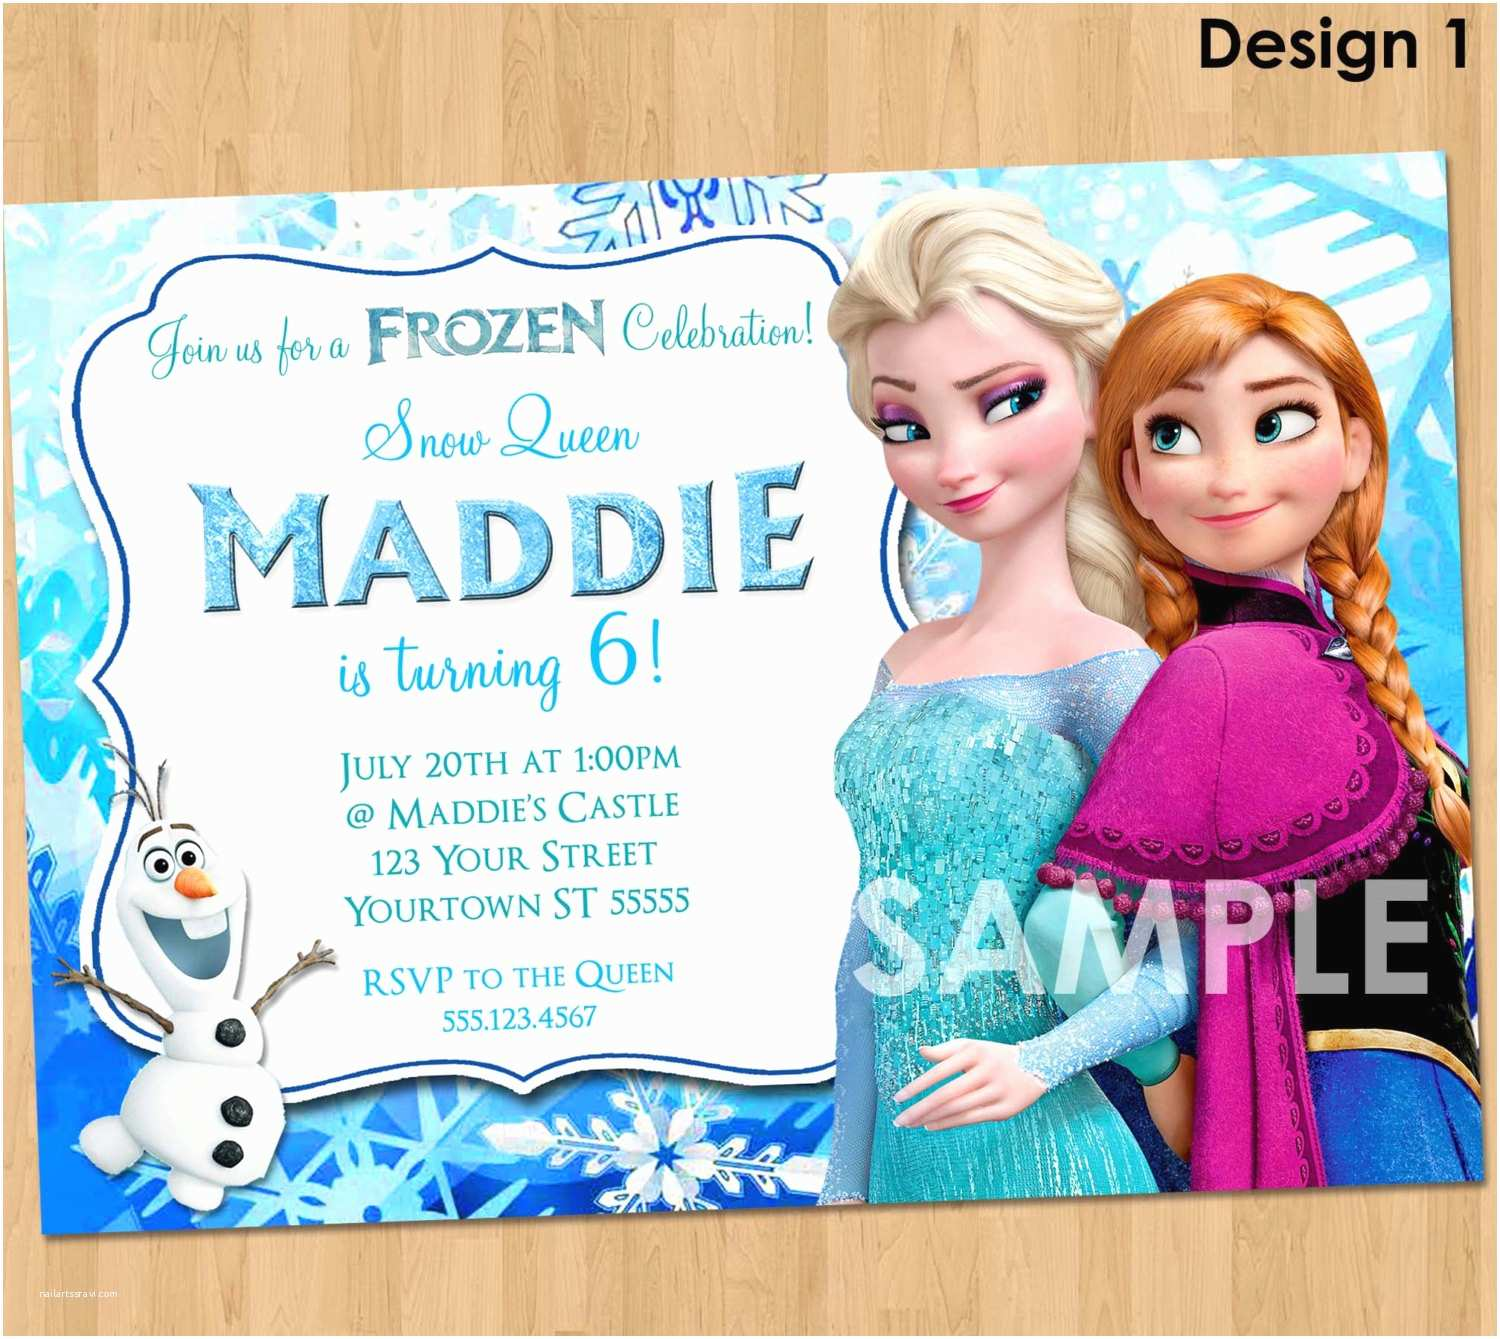 Frozen Party Invitations Frozen Invitation Frozen Birthday Invitation Disney Frozen